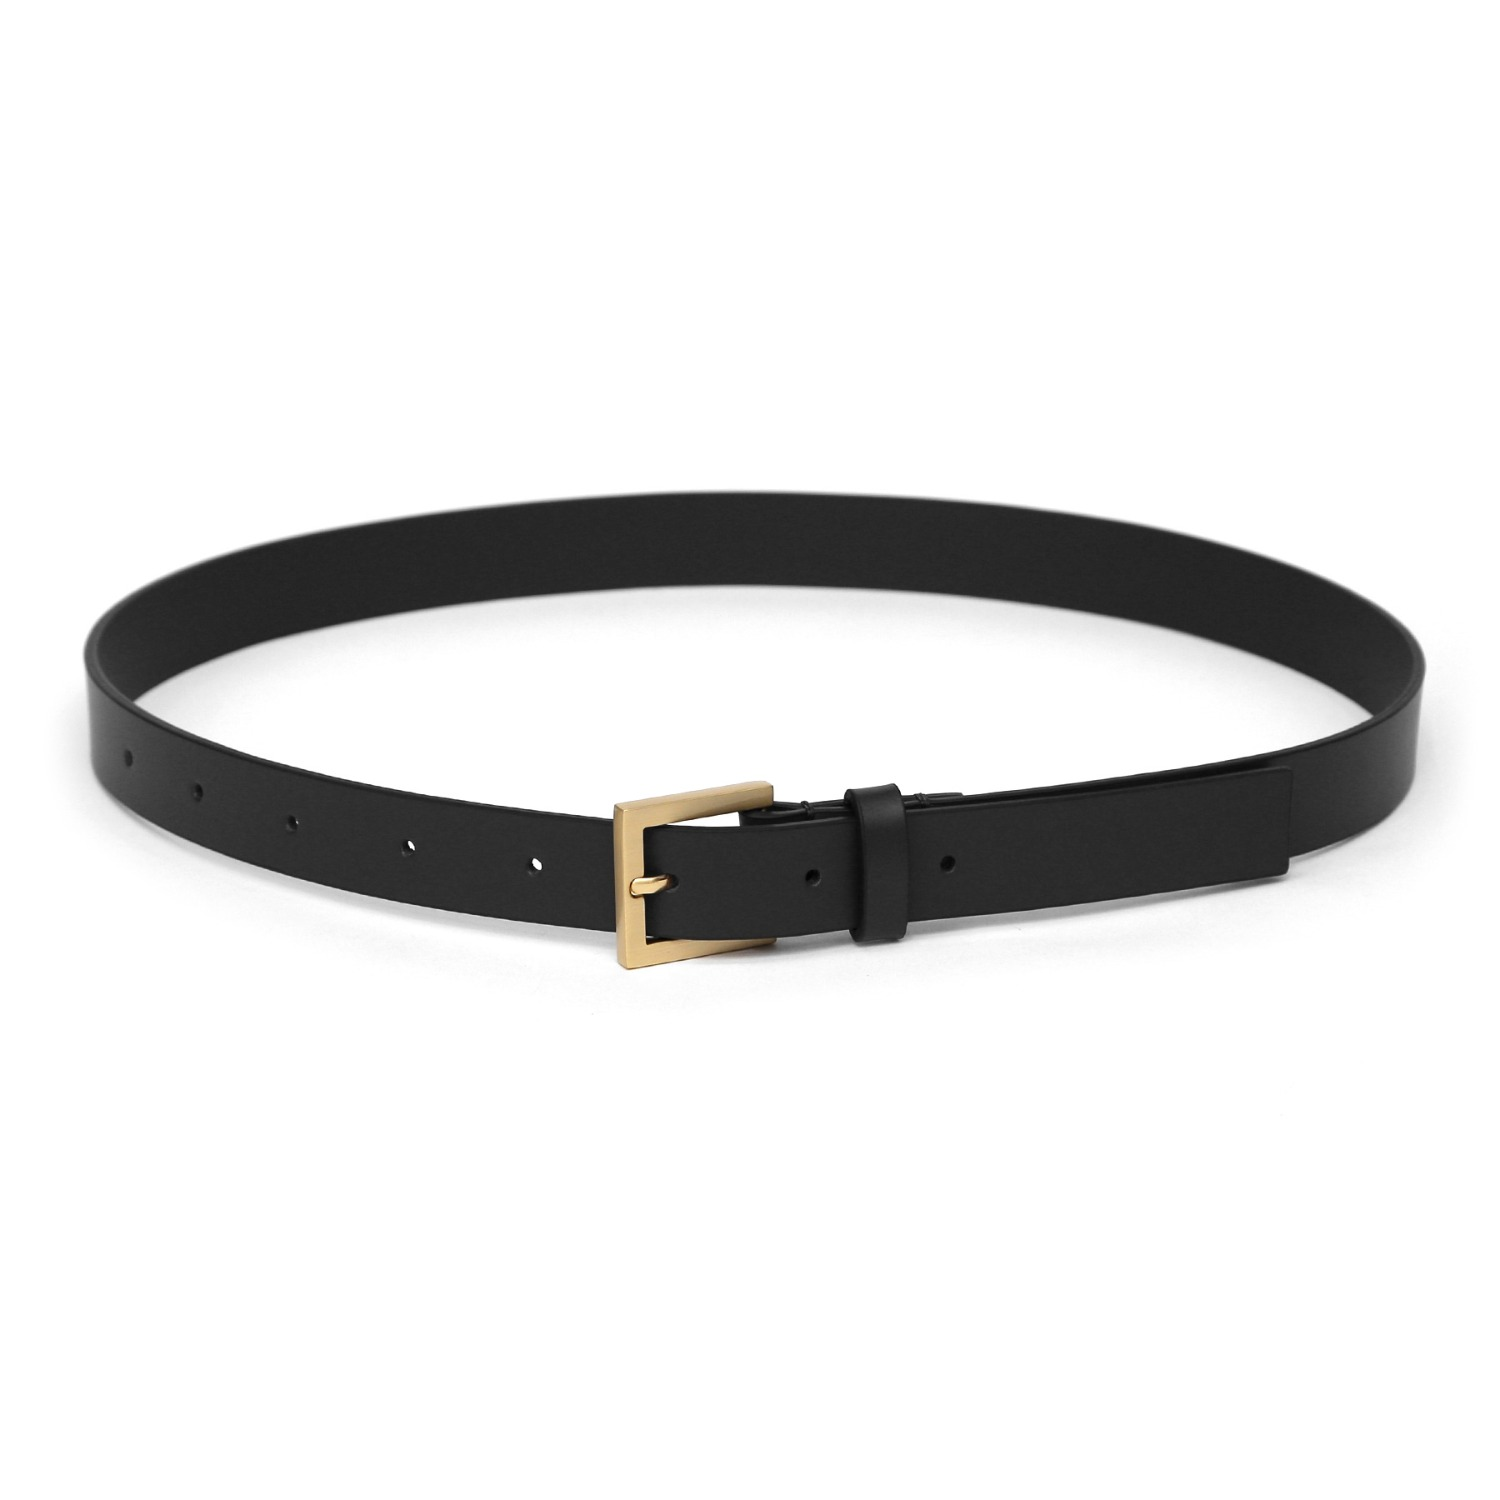 SQUARE BELT / LEATHER / BLACK